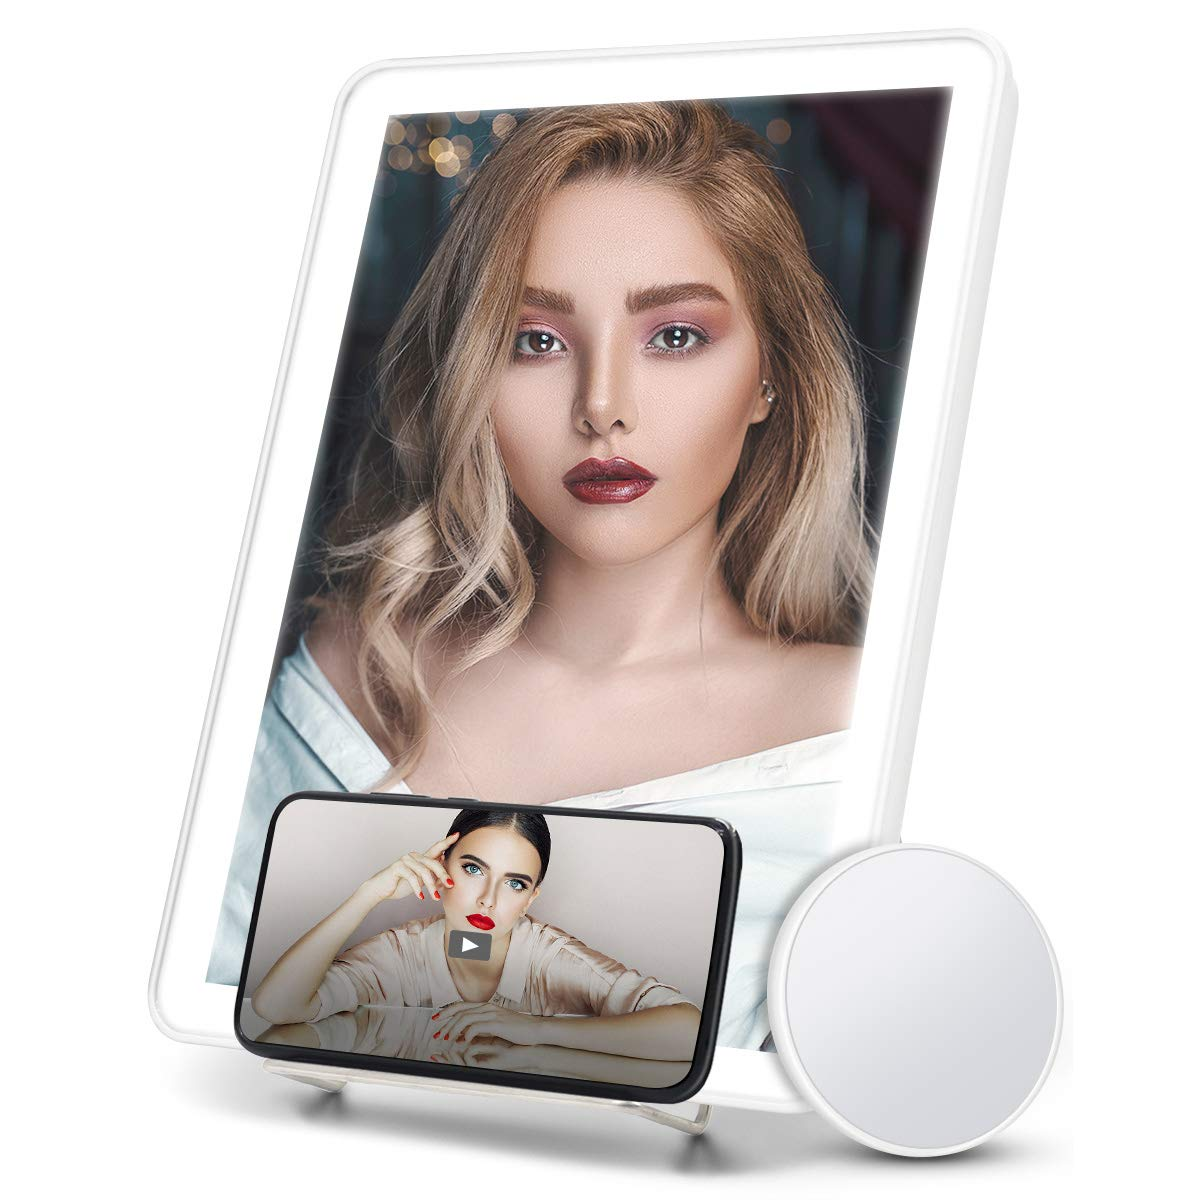 Portable touch light up LED Makeup Mirror with Phone Holder | 3 color lights | clever gift ideas for makeup lovers